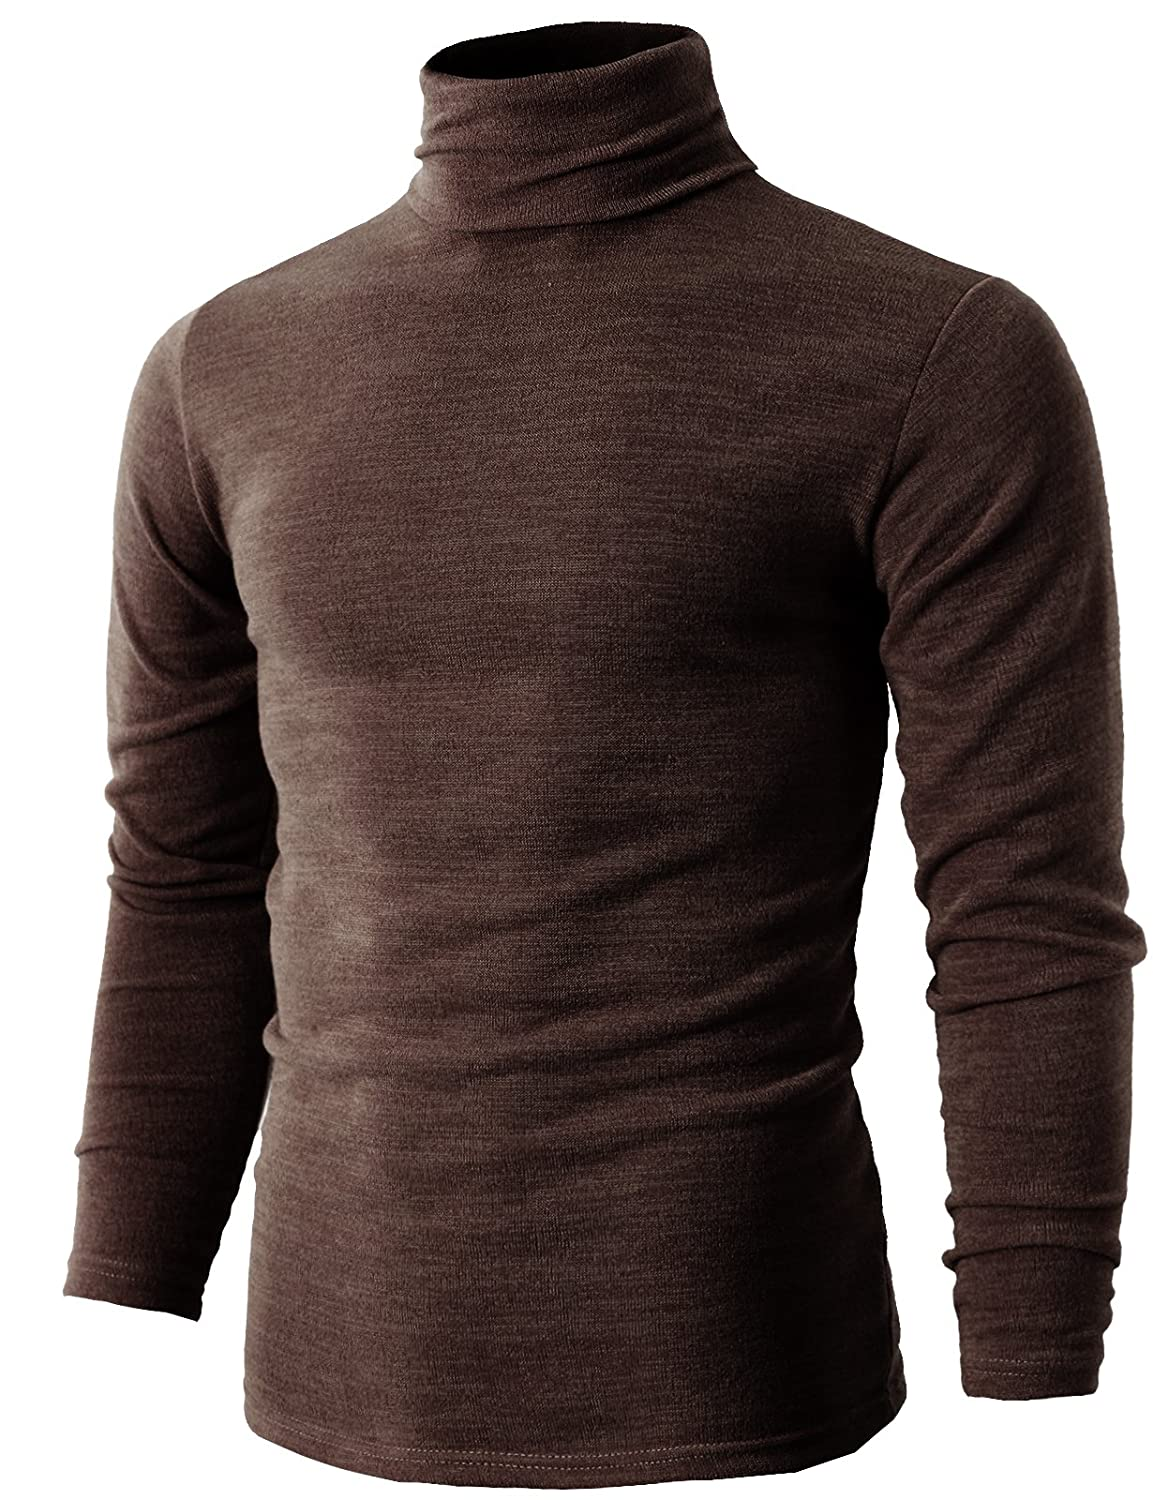 0aa7b0b271ef H2H Mens Casual Slim Fit Knitted Thermal Turtleneck Pullover Sweaters Basic  Designed